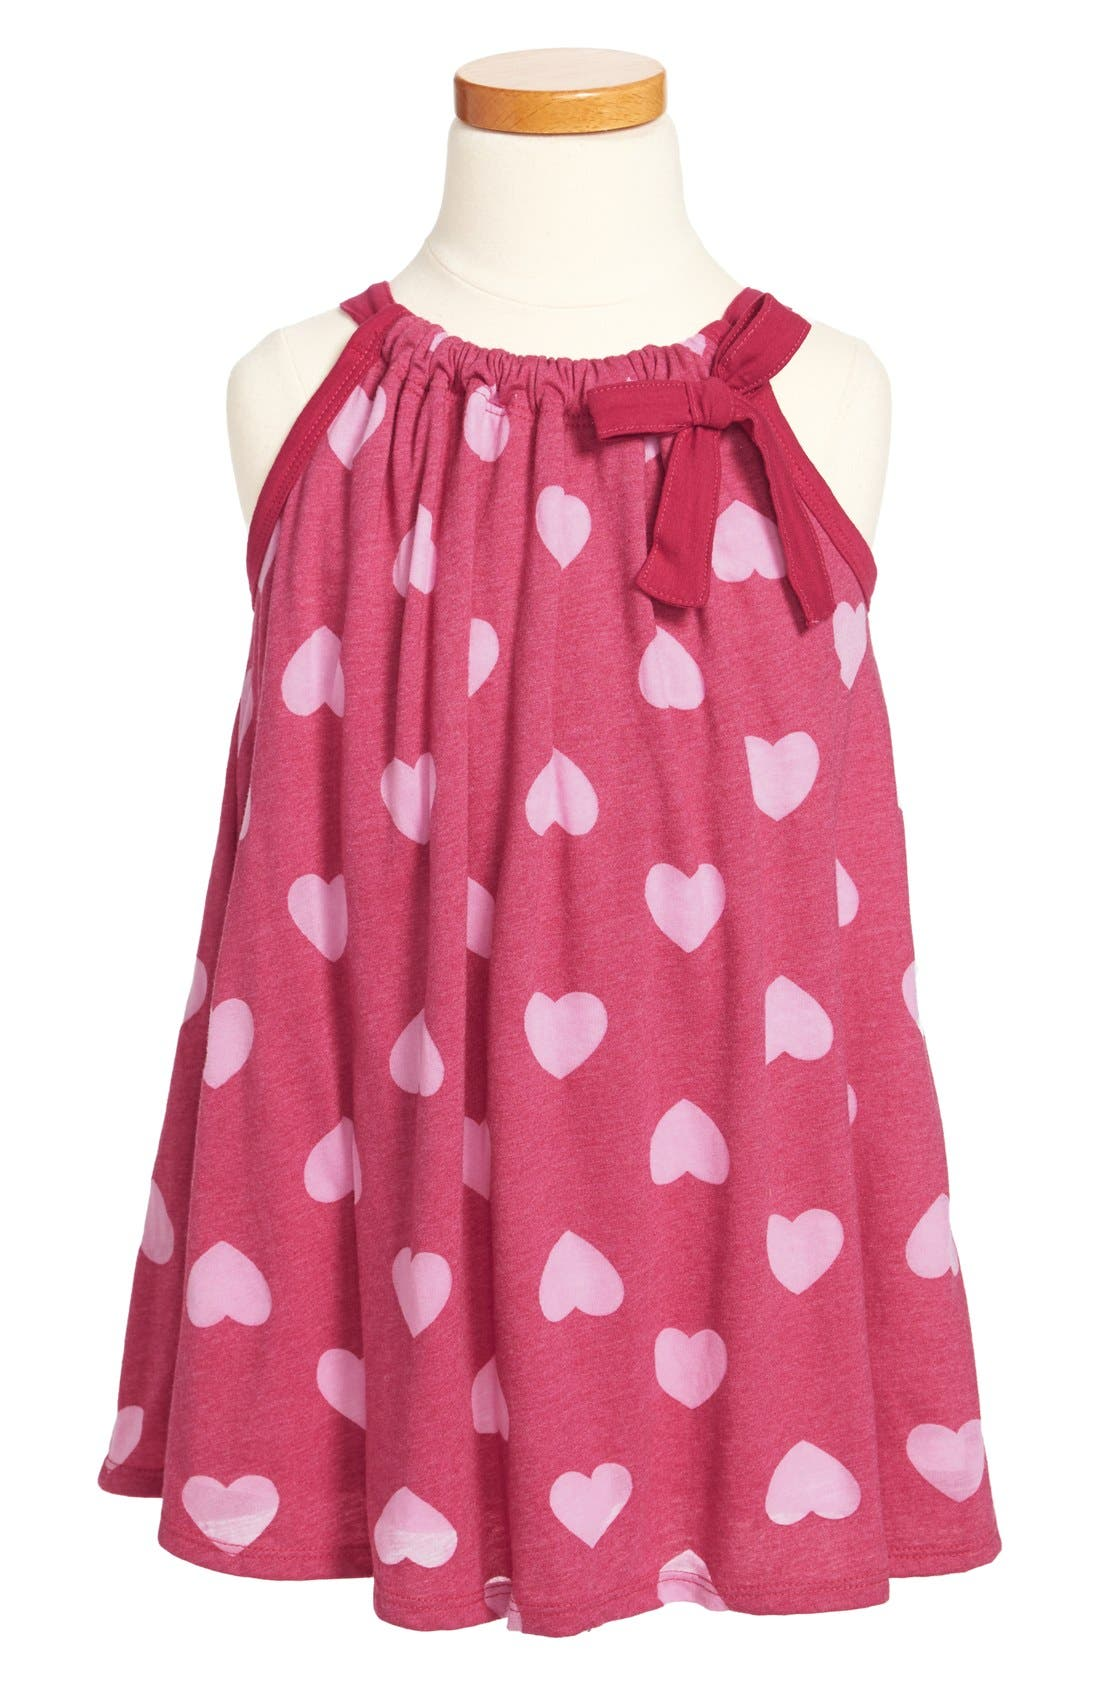 Main Image - Red Wagon Baby Print Dress (Little Girls)